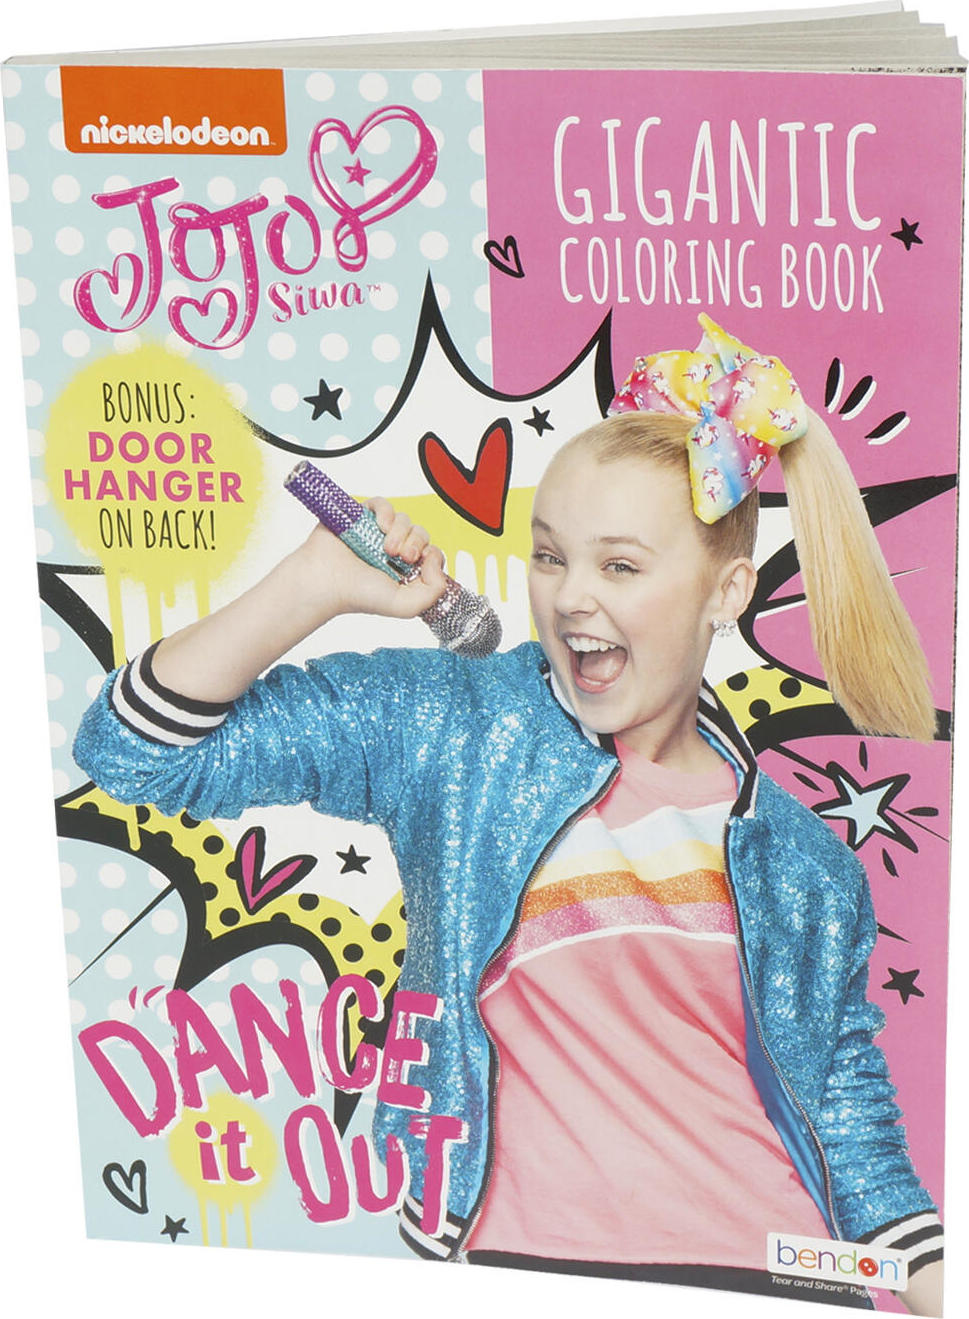 Jojo Siwa Gigantic Coloring Book - The Learning Post Toys